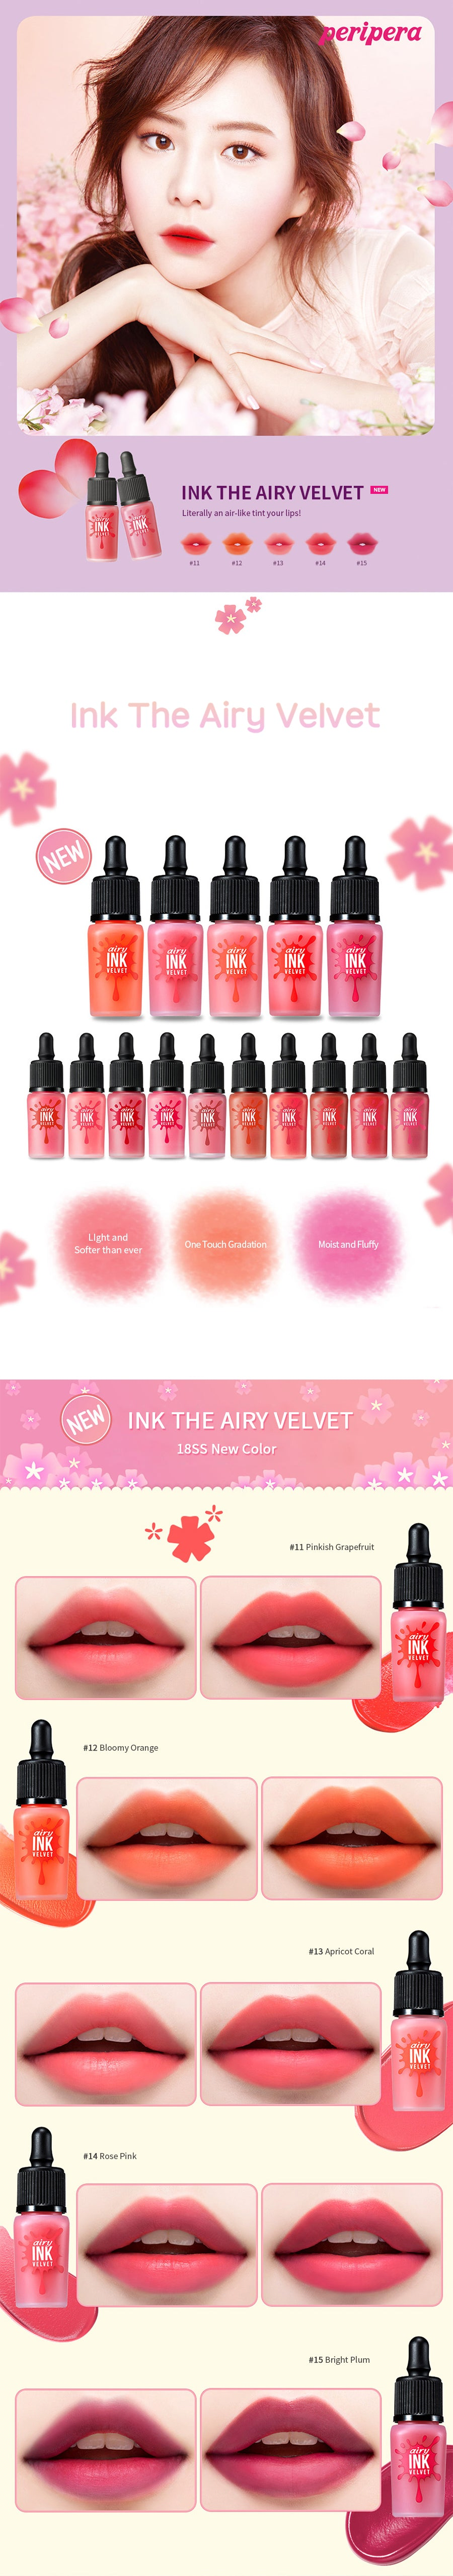 Peripera Ink The Airy Velvet 8g Beauty Meca Original Product Brand